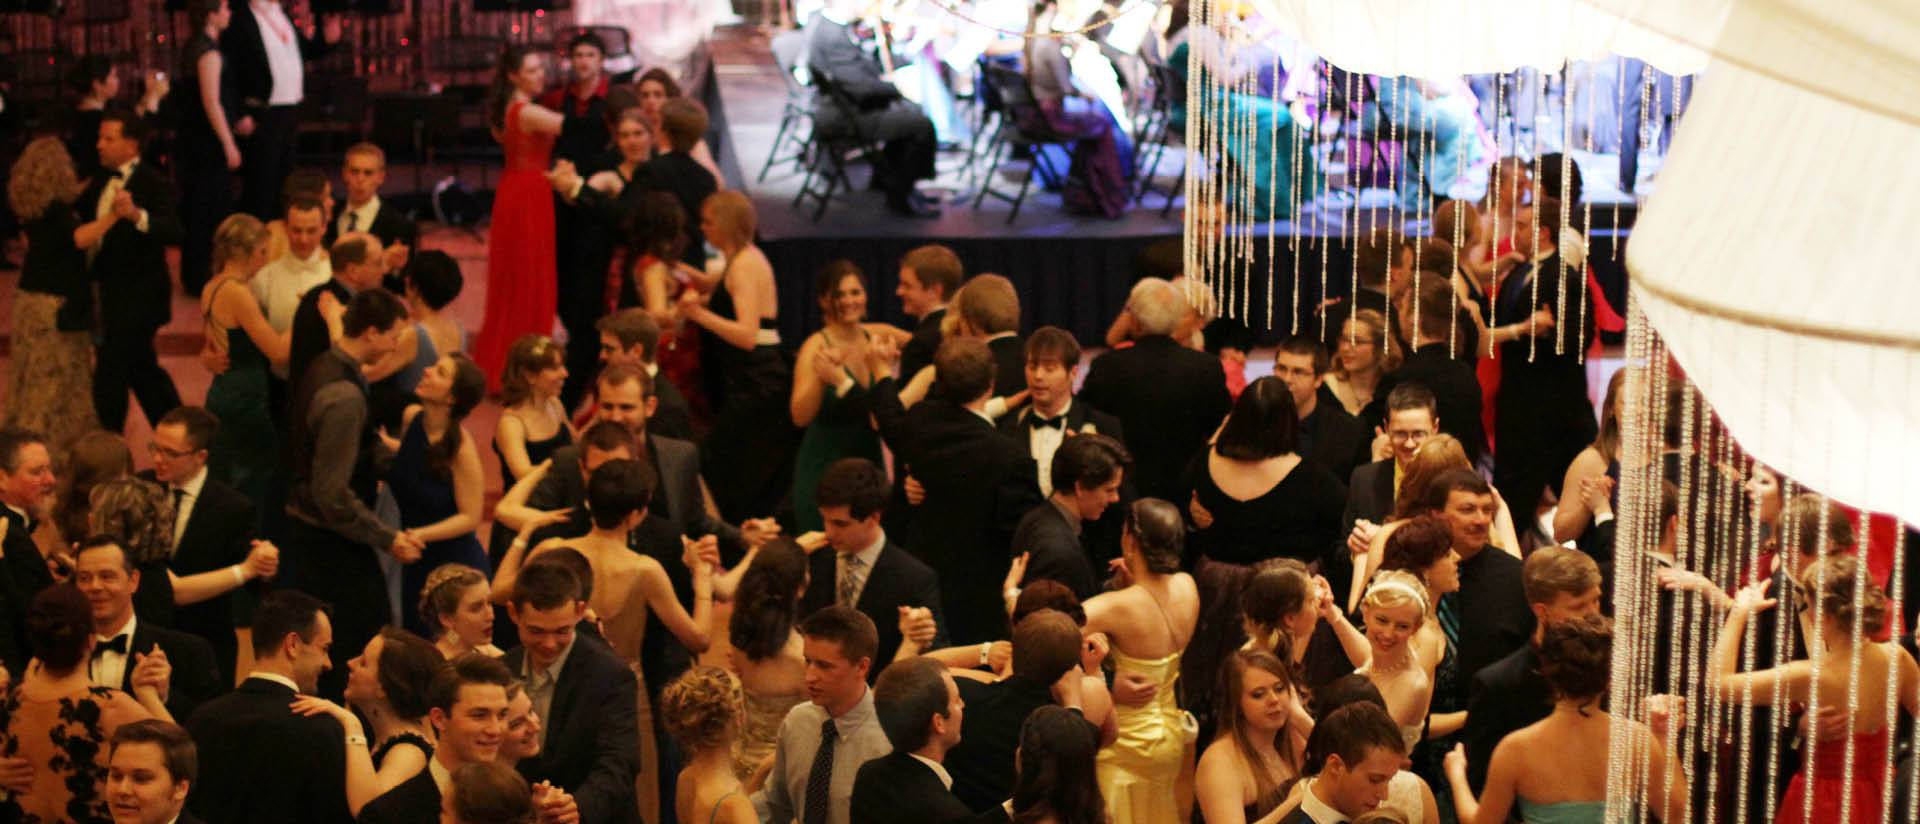 Viennese Ball image